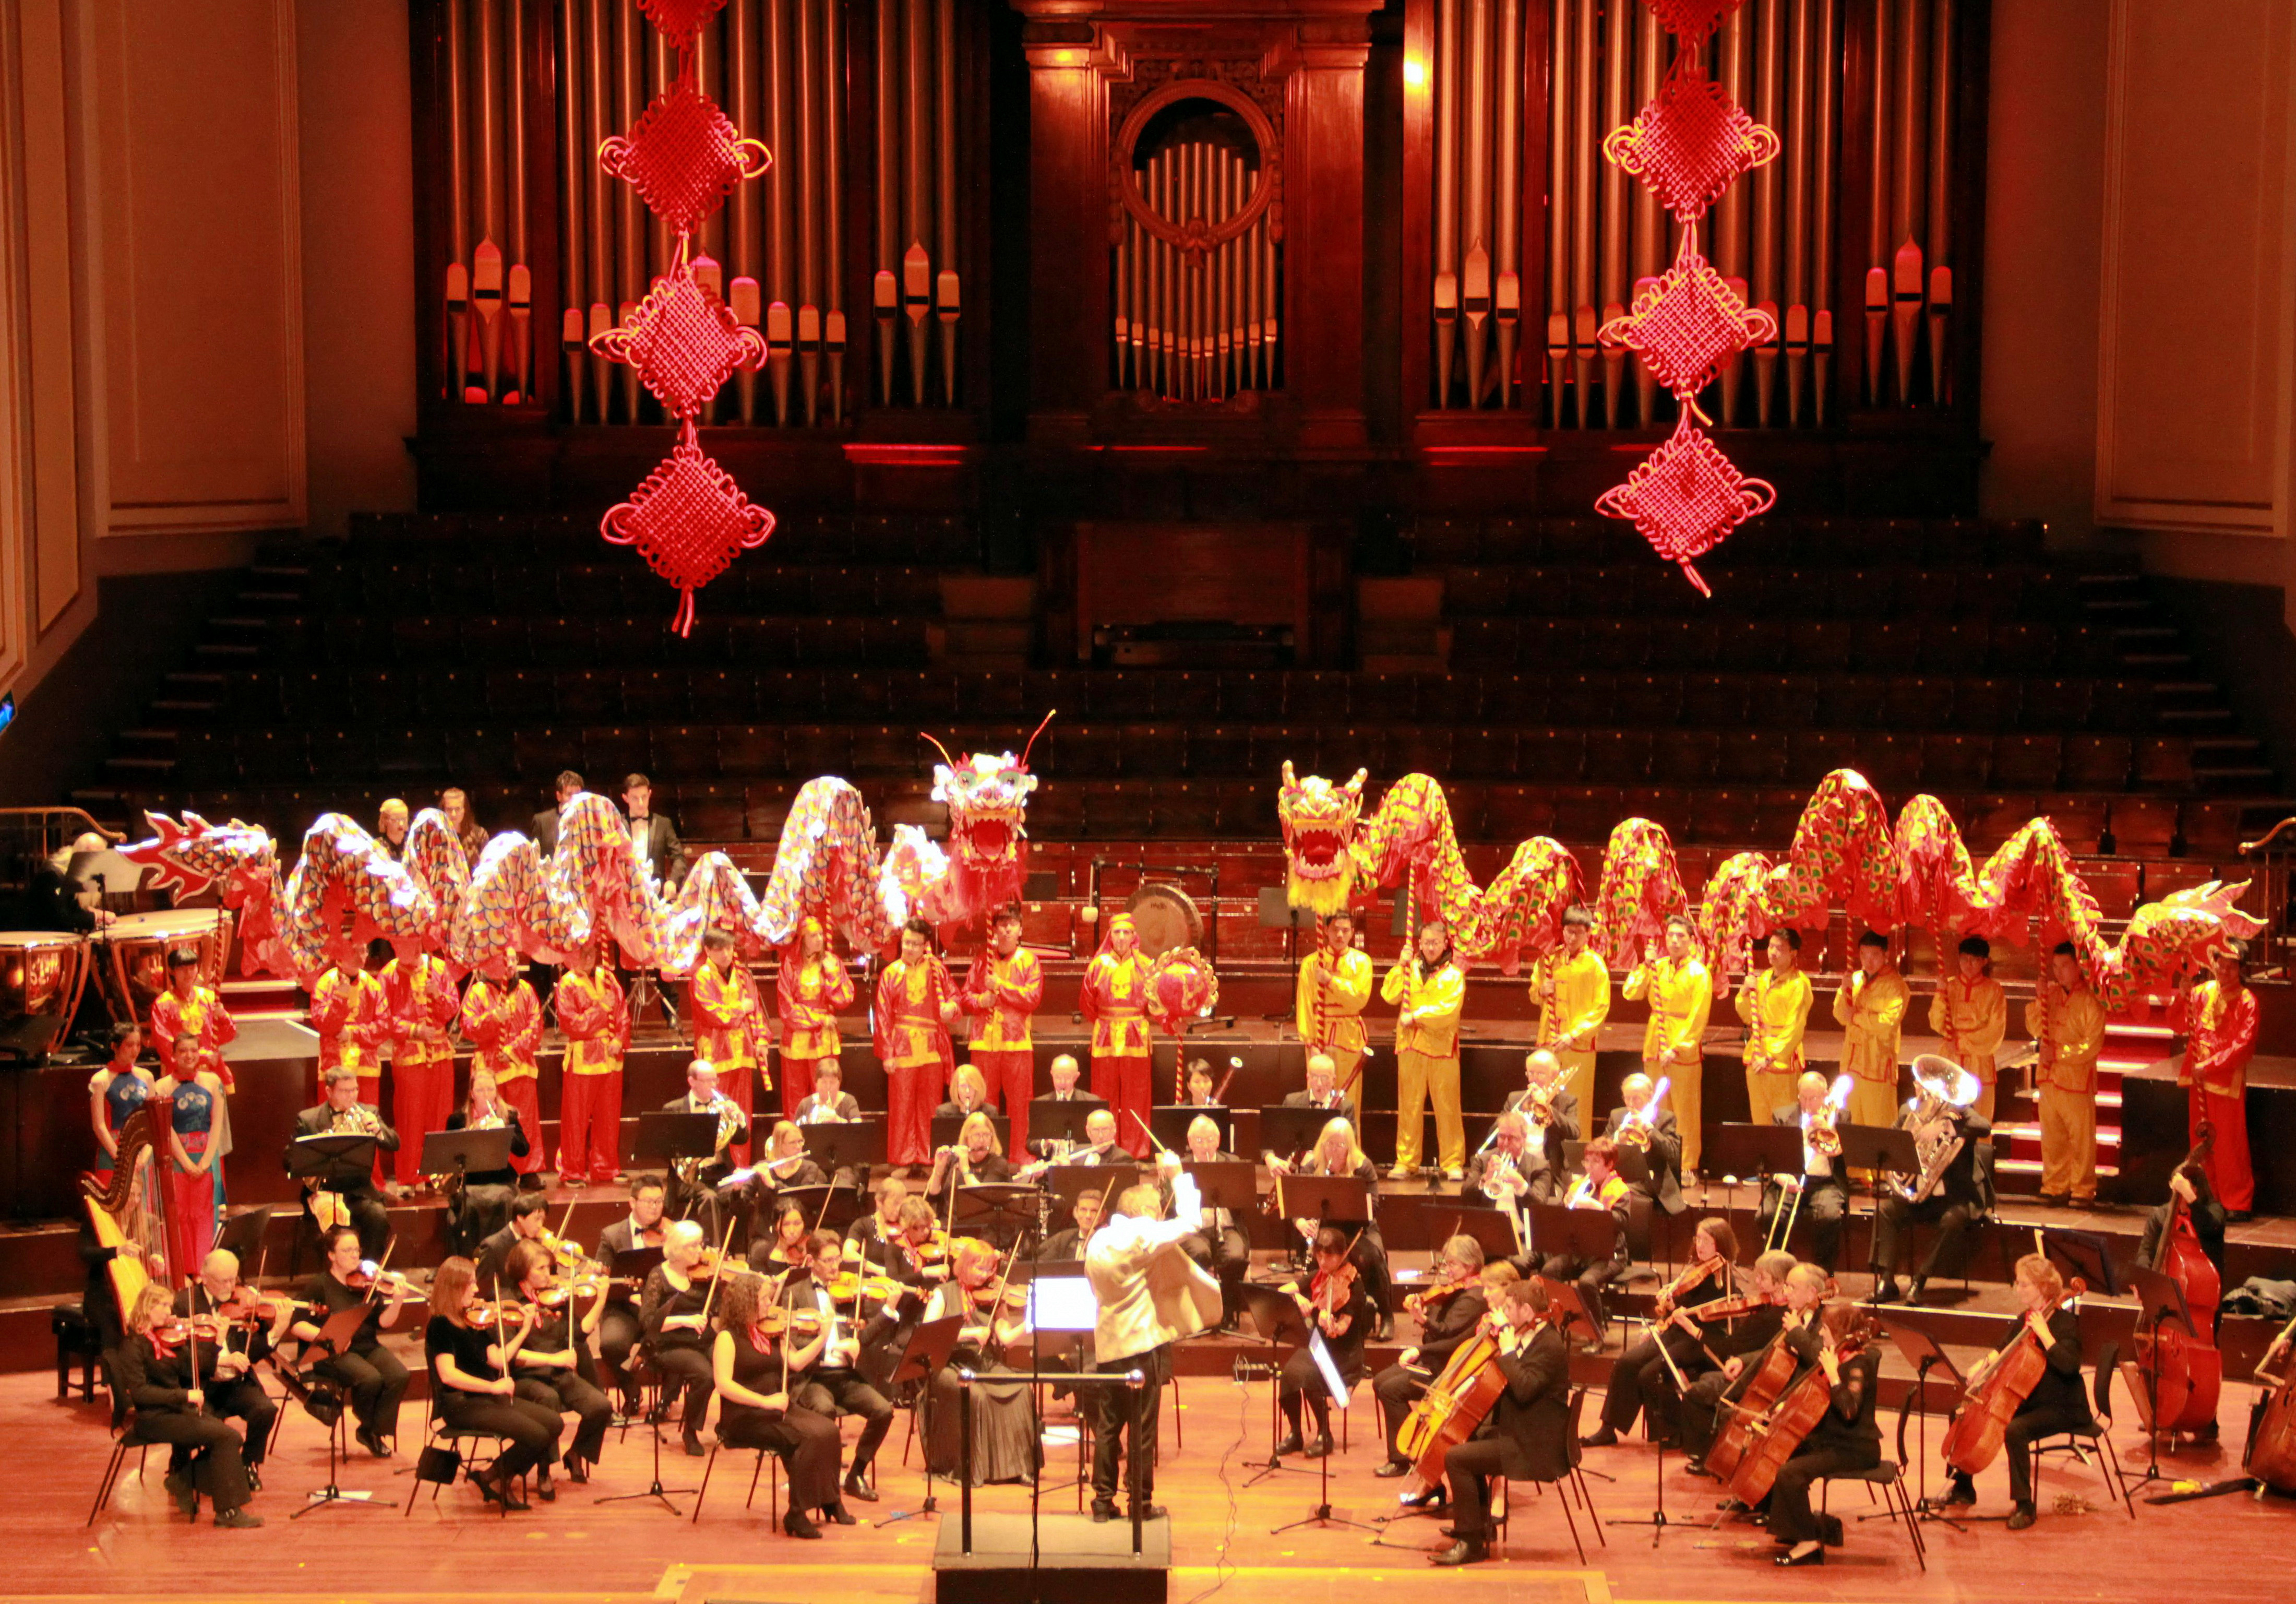 2018 chinese new year reception and concert held in edinburgh and scottish pipe band performance as well as brilliant concert given by chinese artists and edinburgh symphony orchestra sending best wishes to both malvernweather Image collections